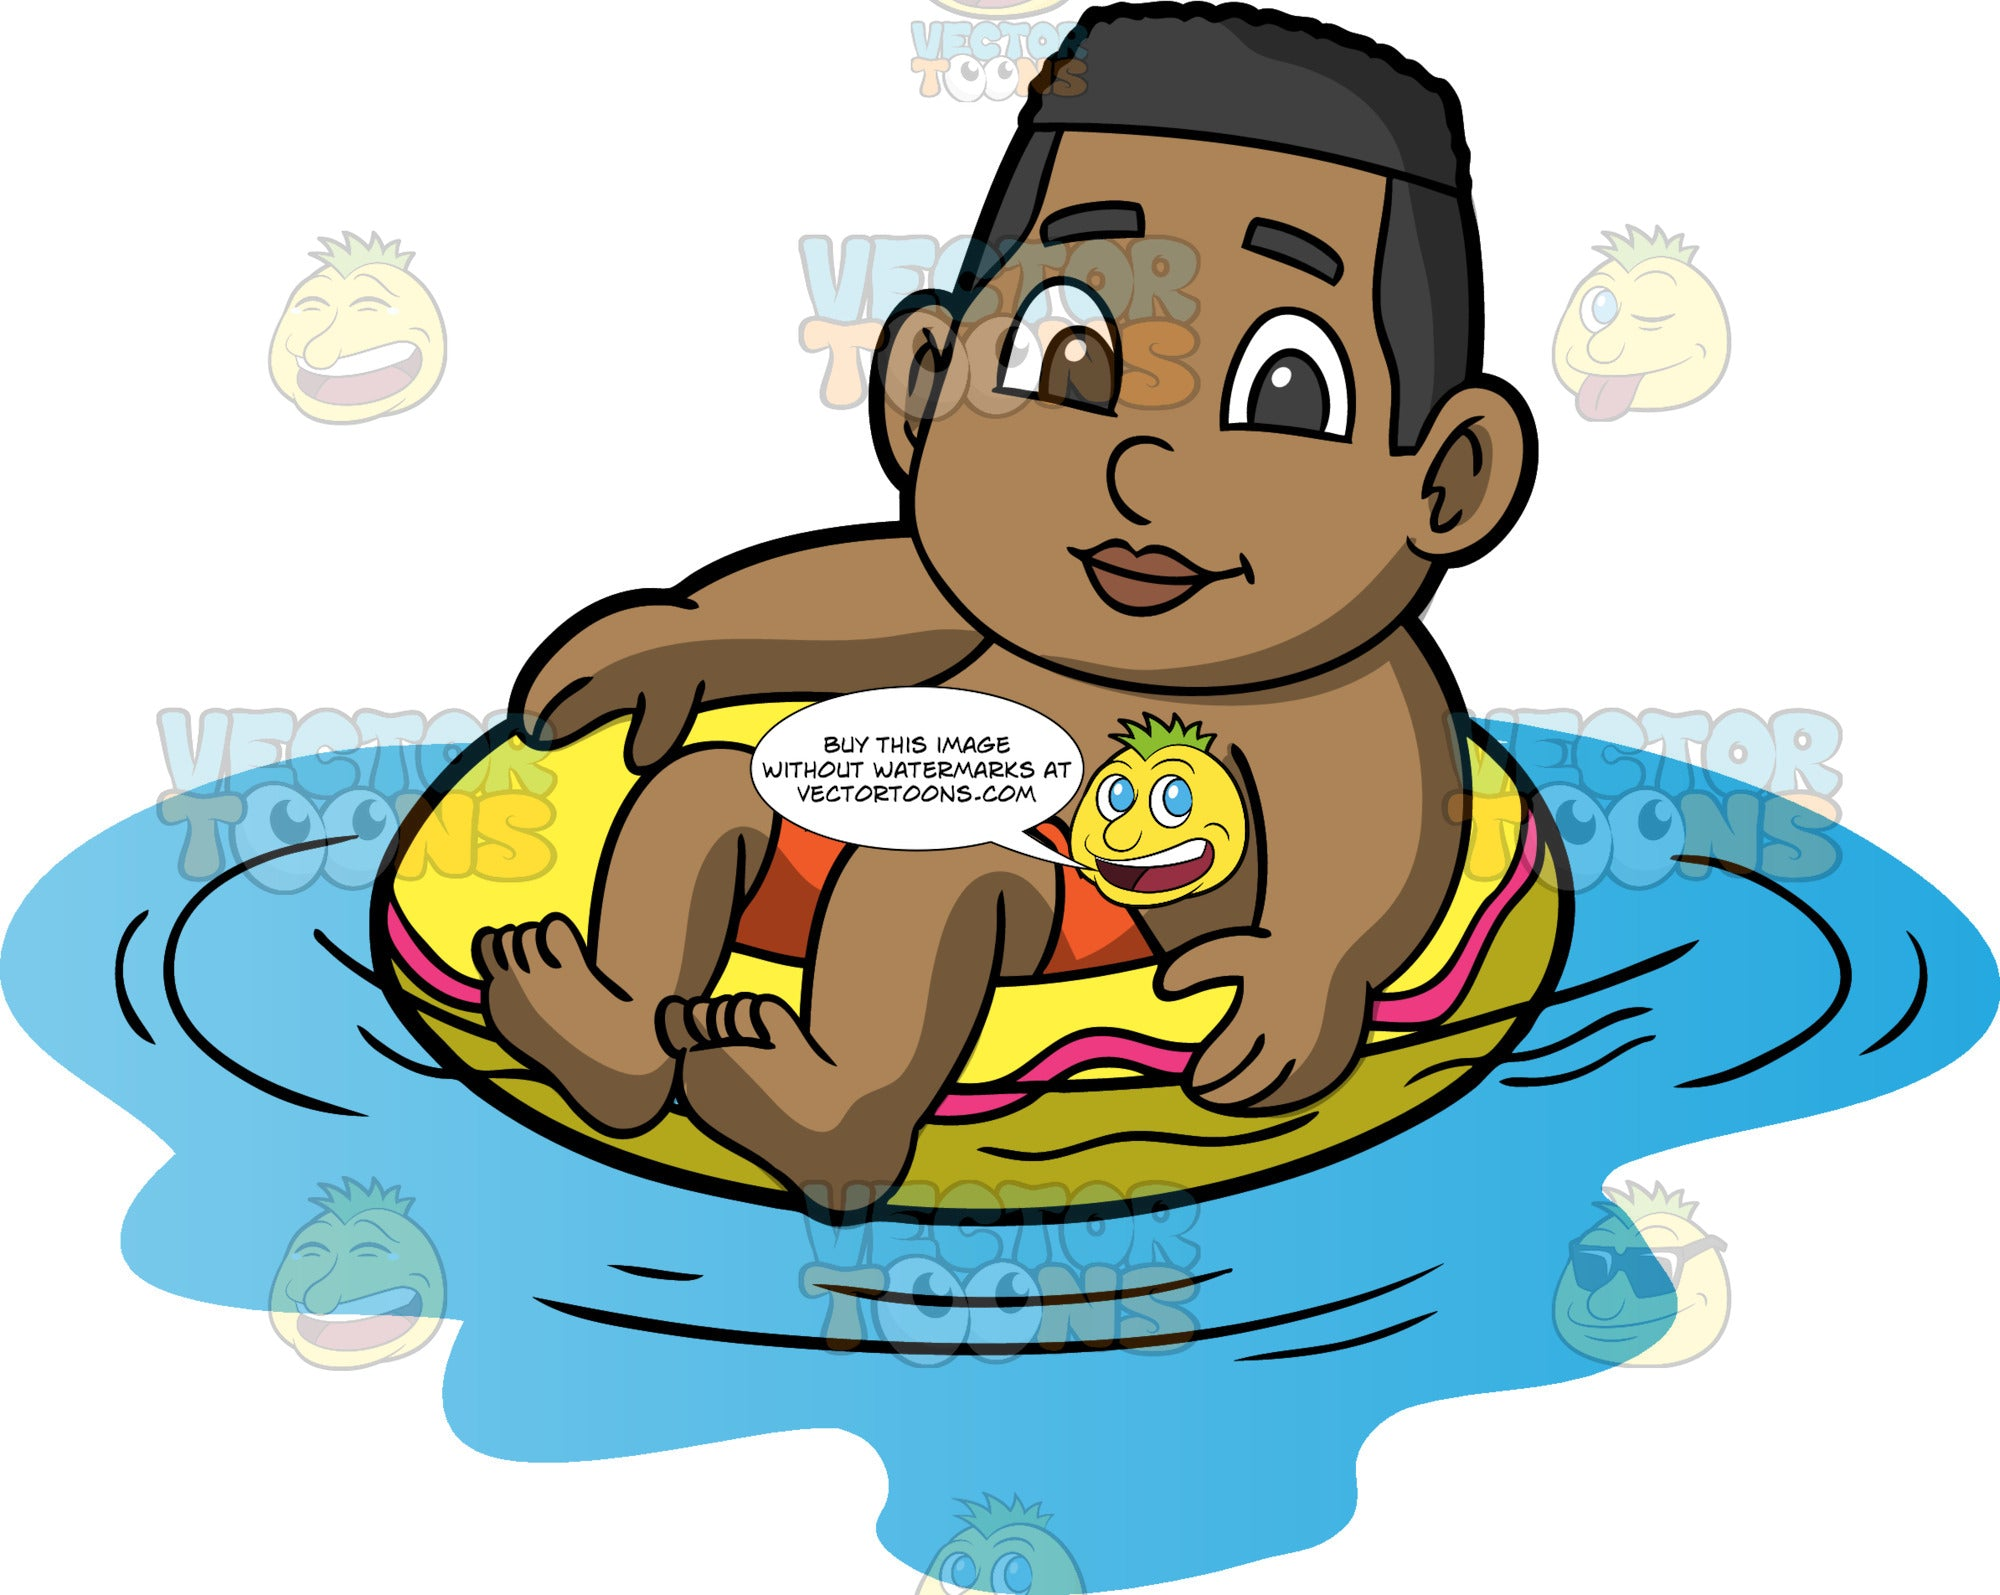 Young James Floating In The Water. A black boy wearing orange swim trunks sitting in a yellow swim ring and floating in a pool